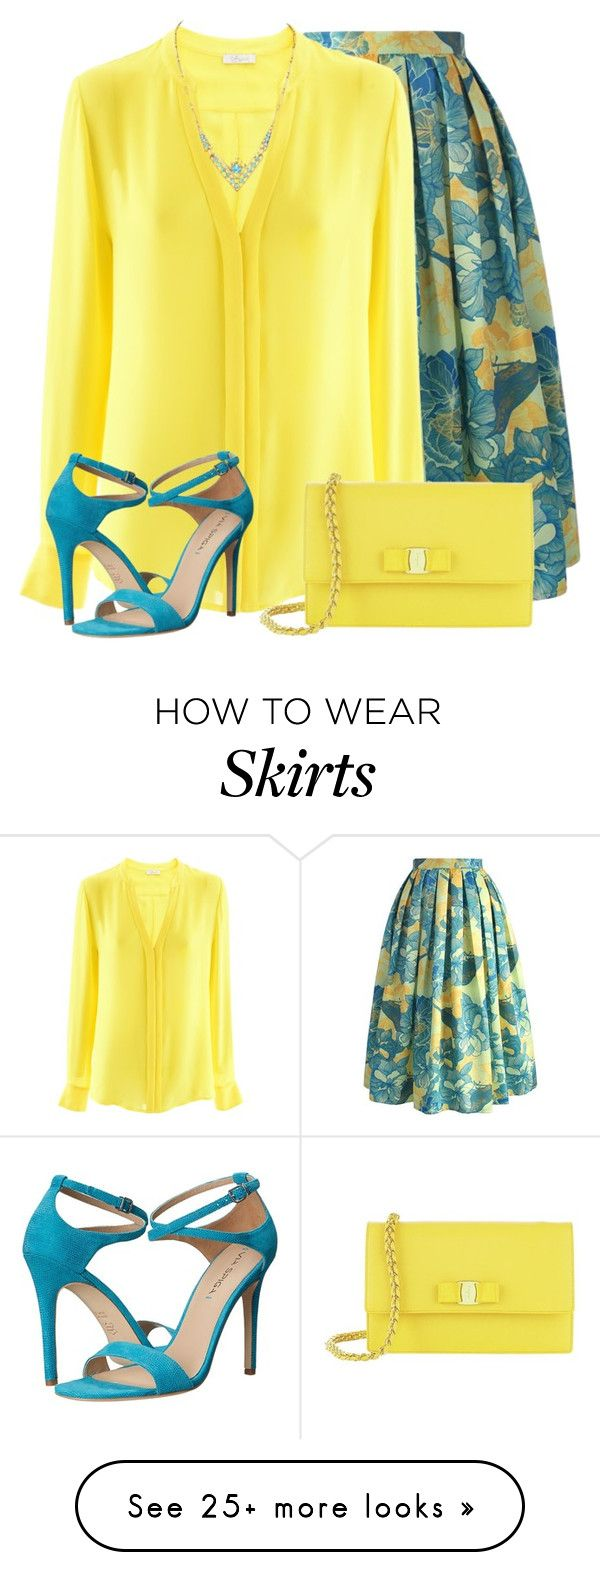 """Floral Spring Skirt"" by daiscat on Polyvore featuring Chicwish, iHeart, Salvatore Ferragamo and Via Spiga"